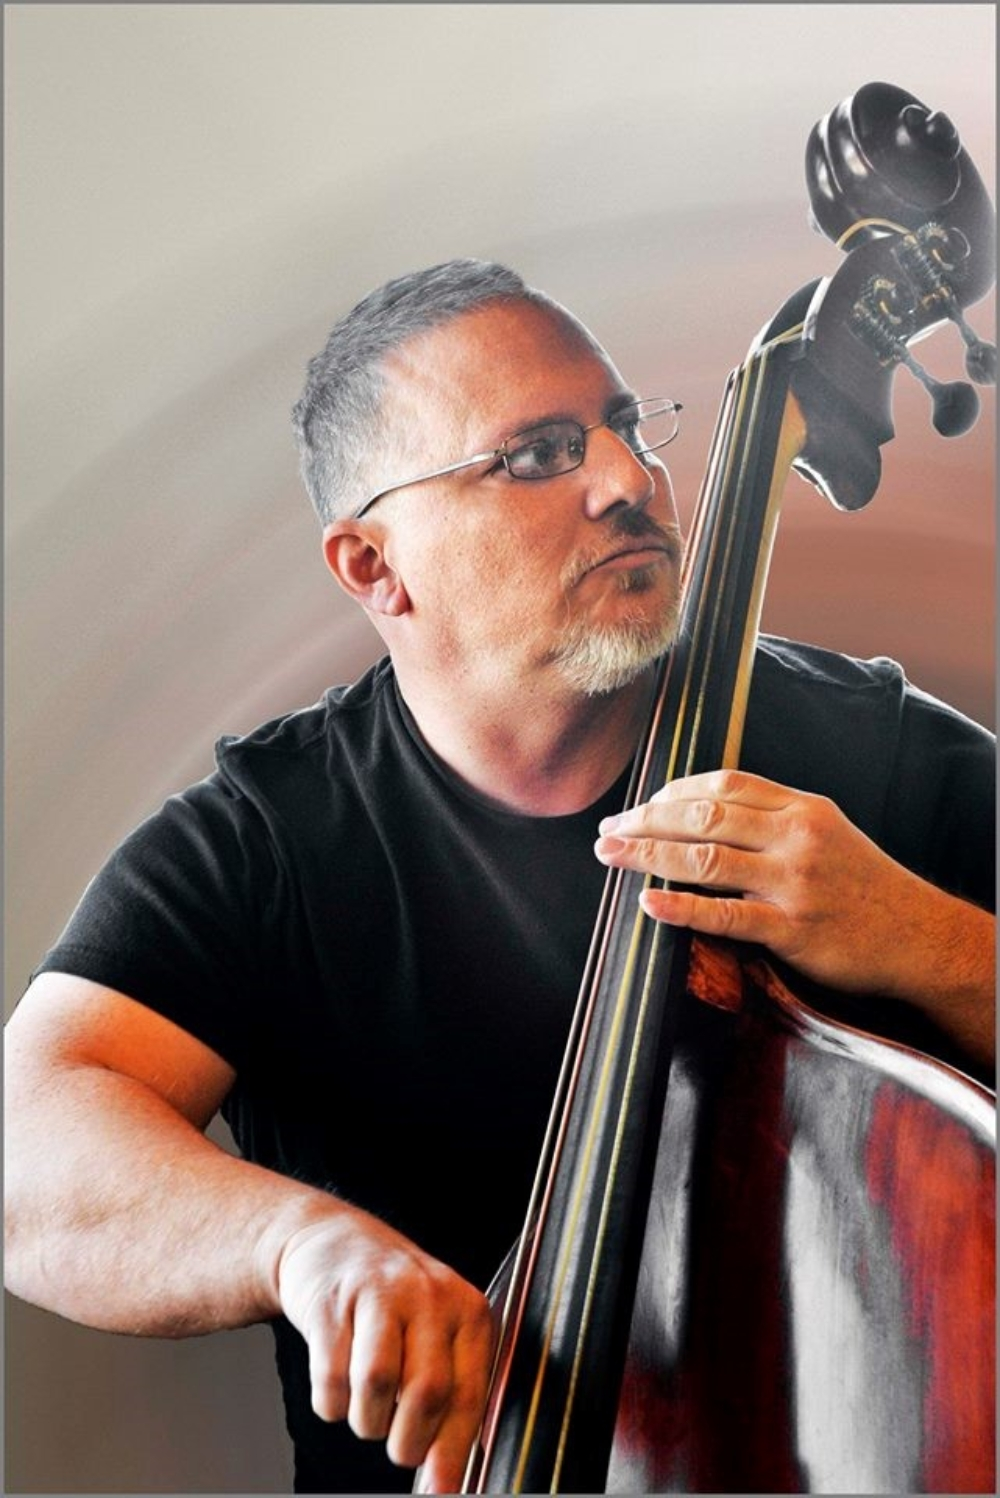 Cezanne Jazz Series at Glade Presents: Glen Ackerman Trio with Woody Witt and Daniel Dufour